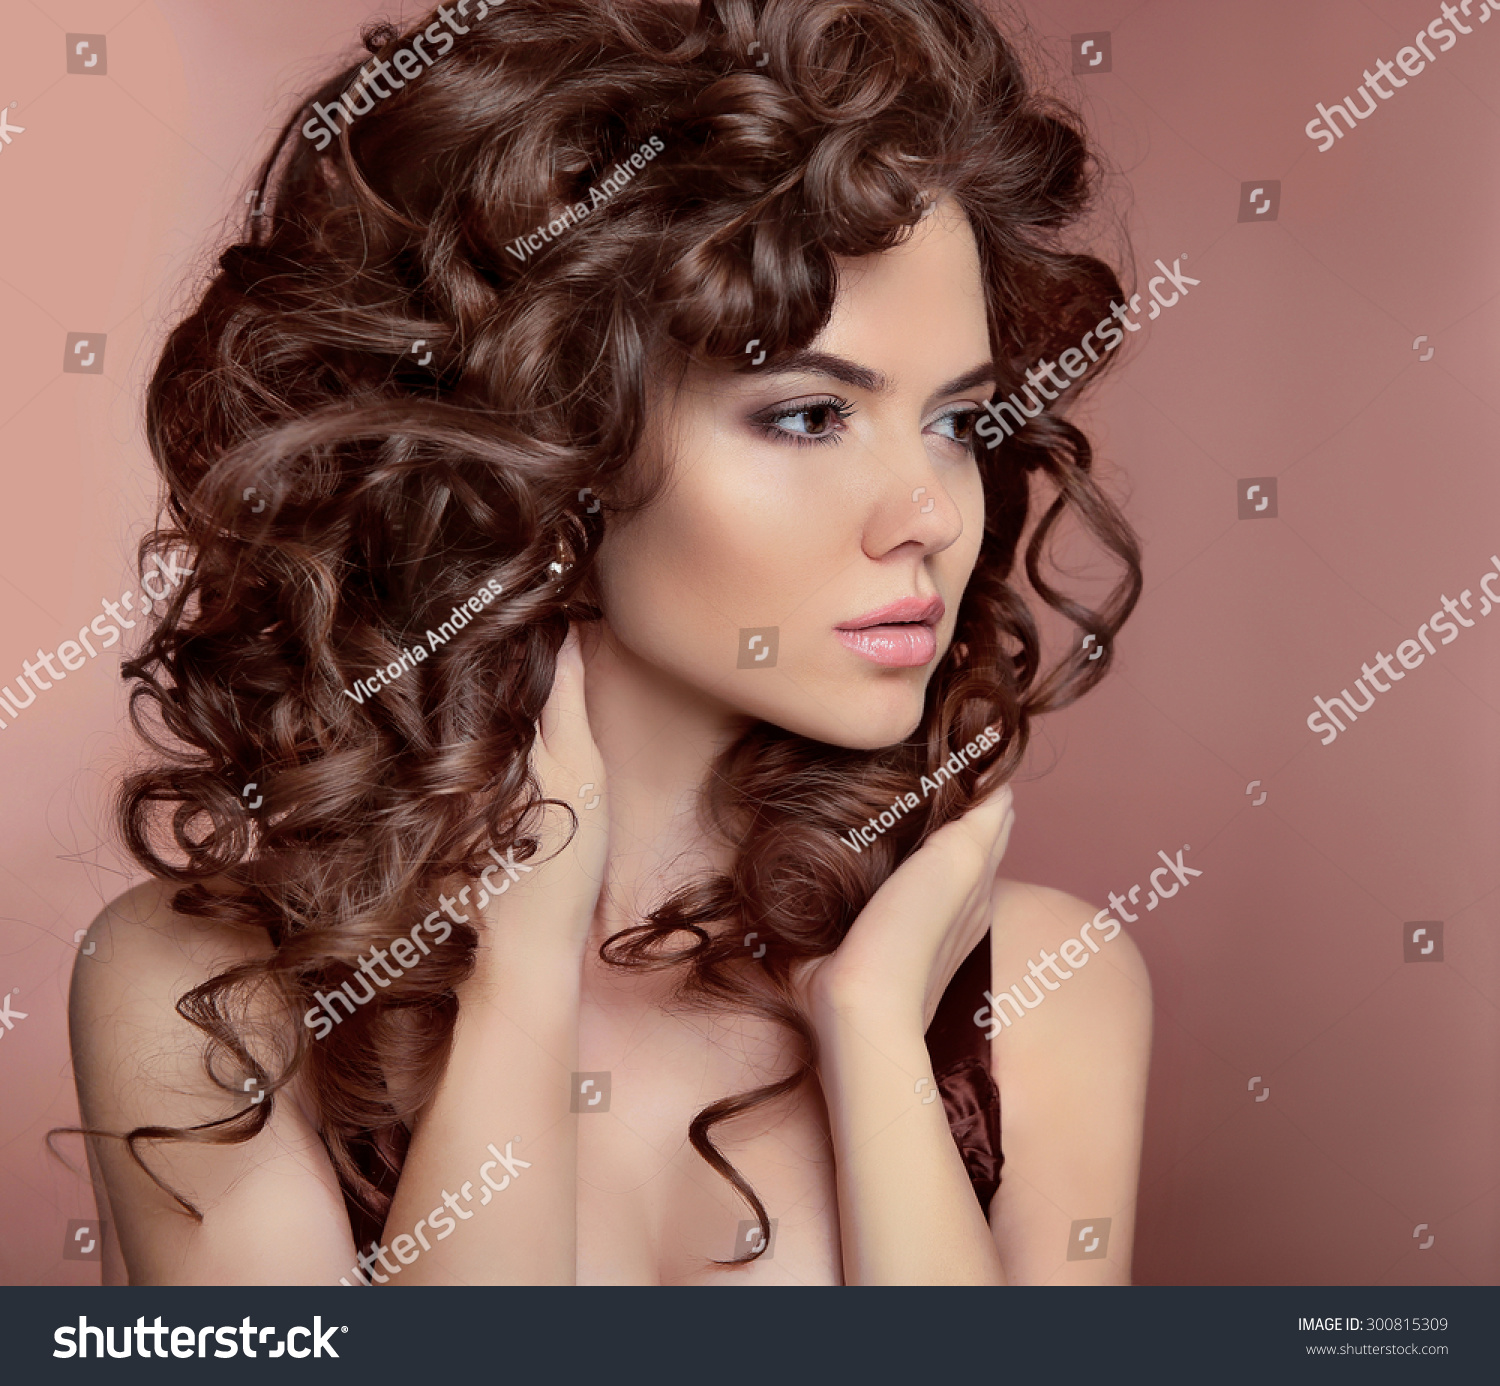 Astounding Wavy Hair Beautiful Girl With Makeup Curly Hairstyle Brunette Short Hairstyles For Black Women Fulllsitofus